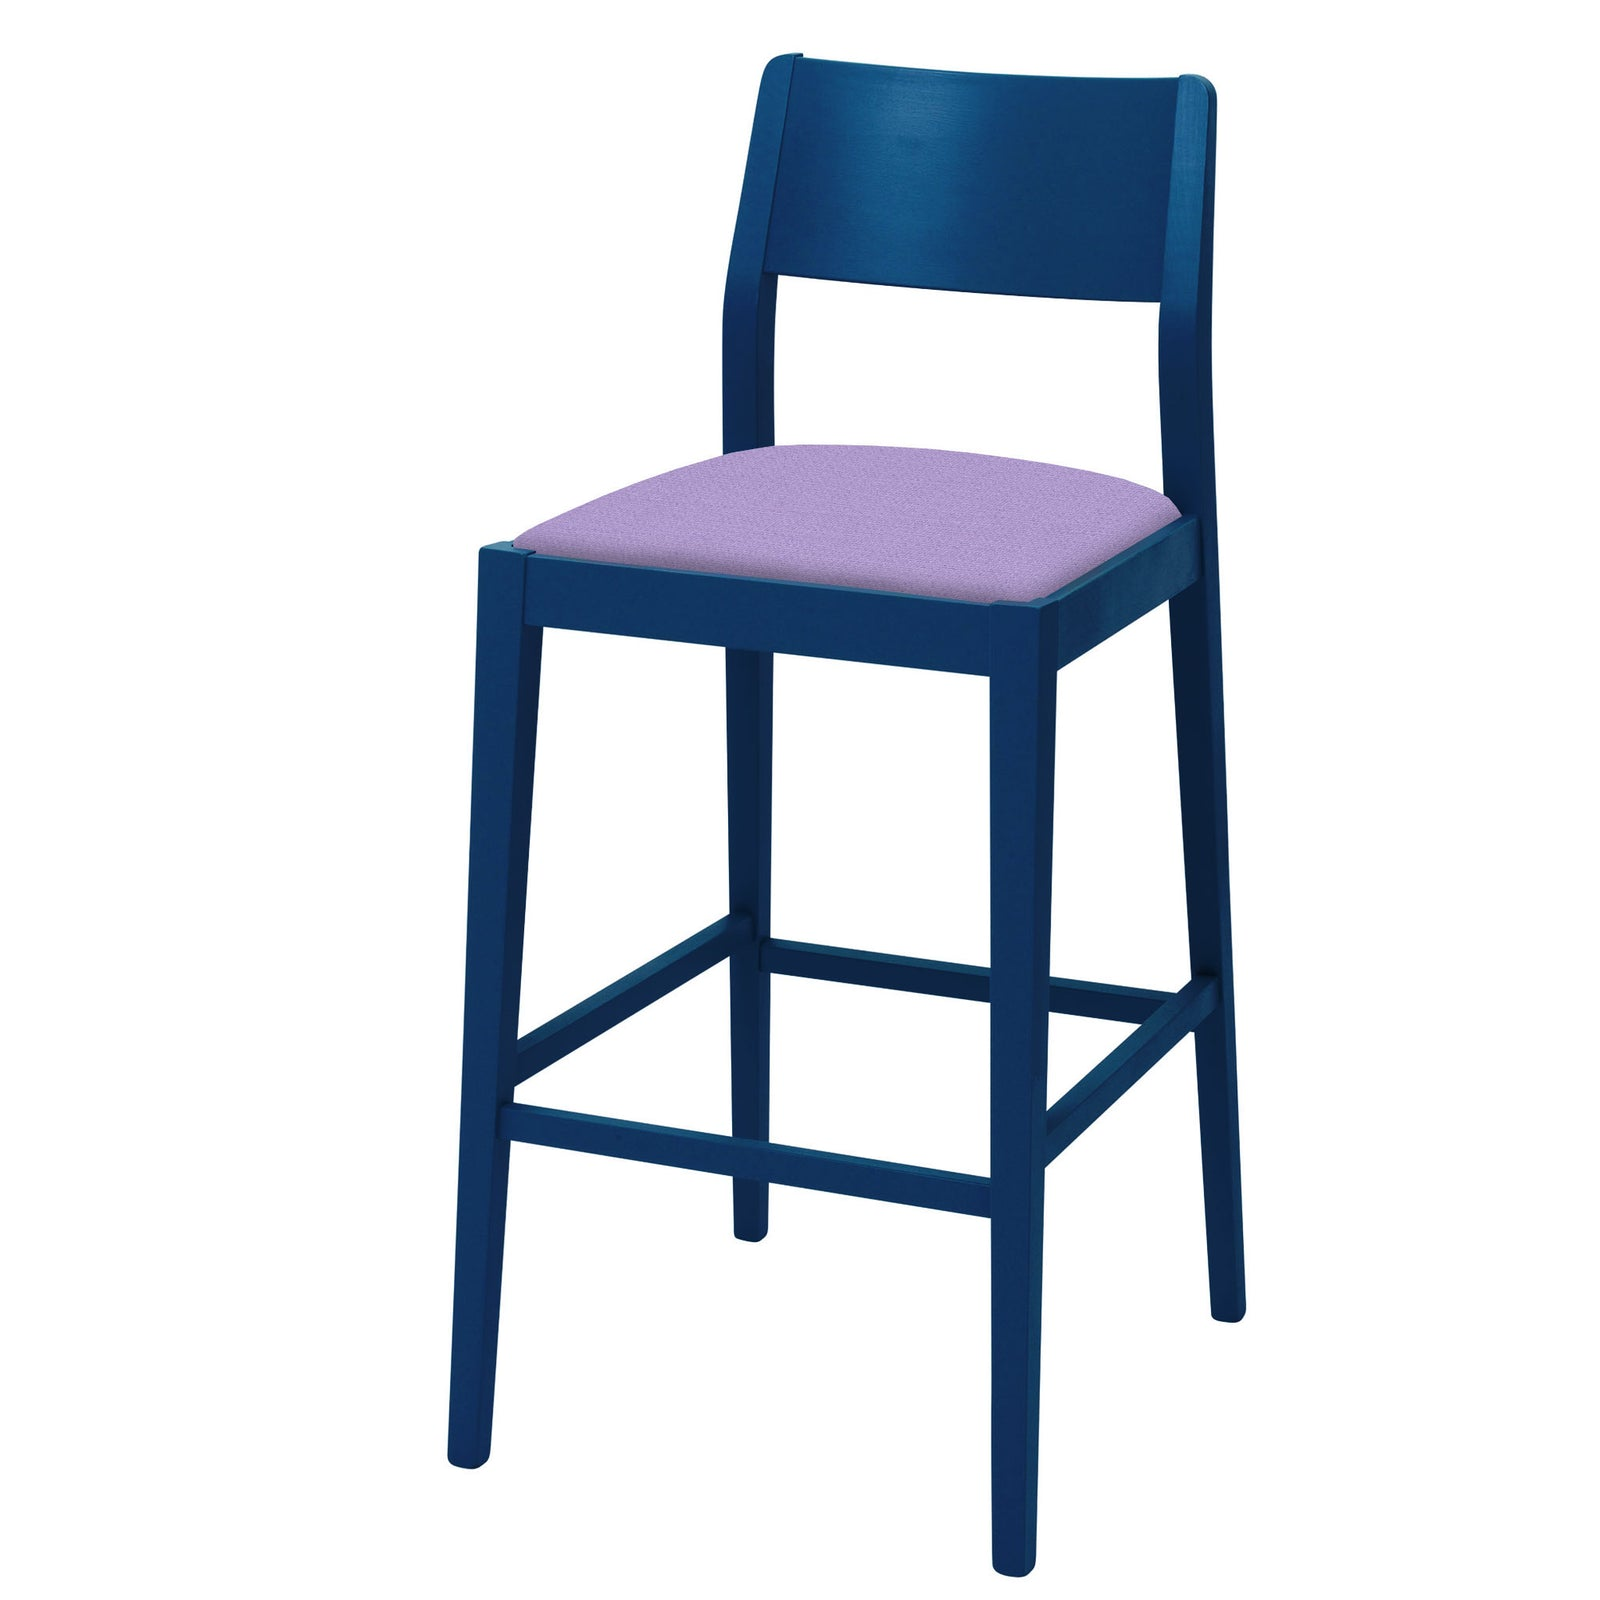 James Shaker Style Bar Stool made-to-order in your chosen colourway.